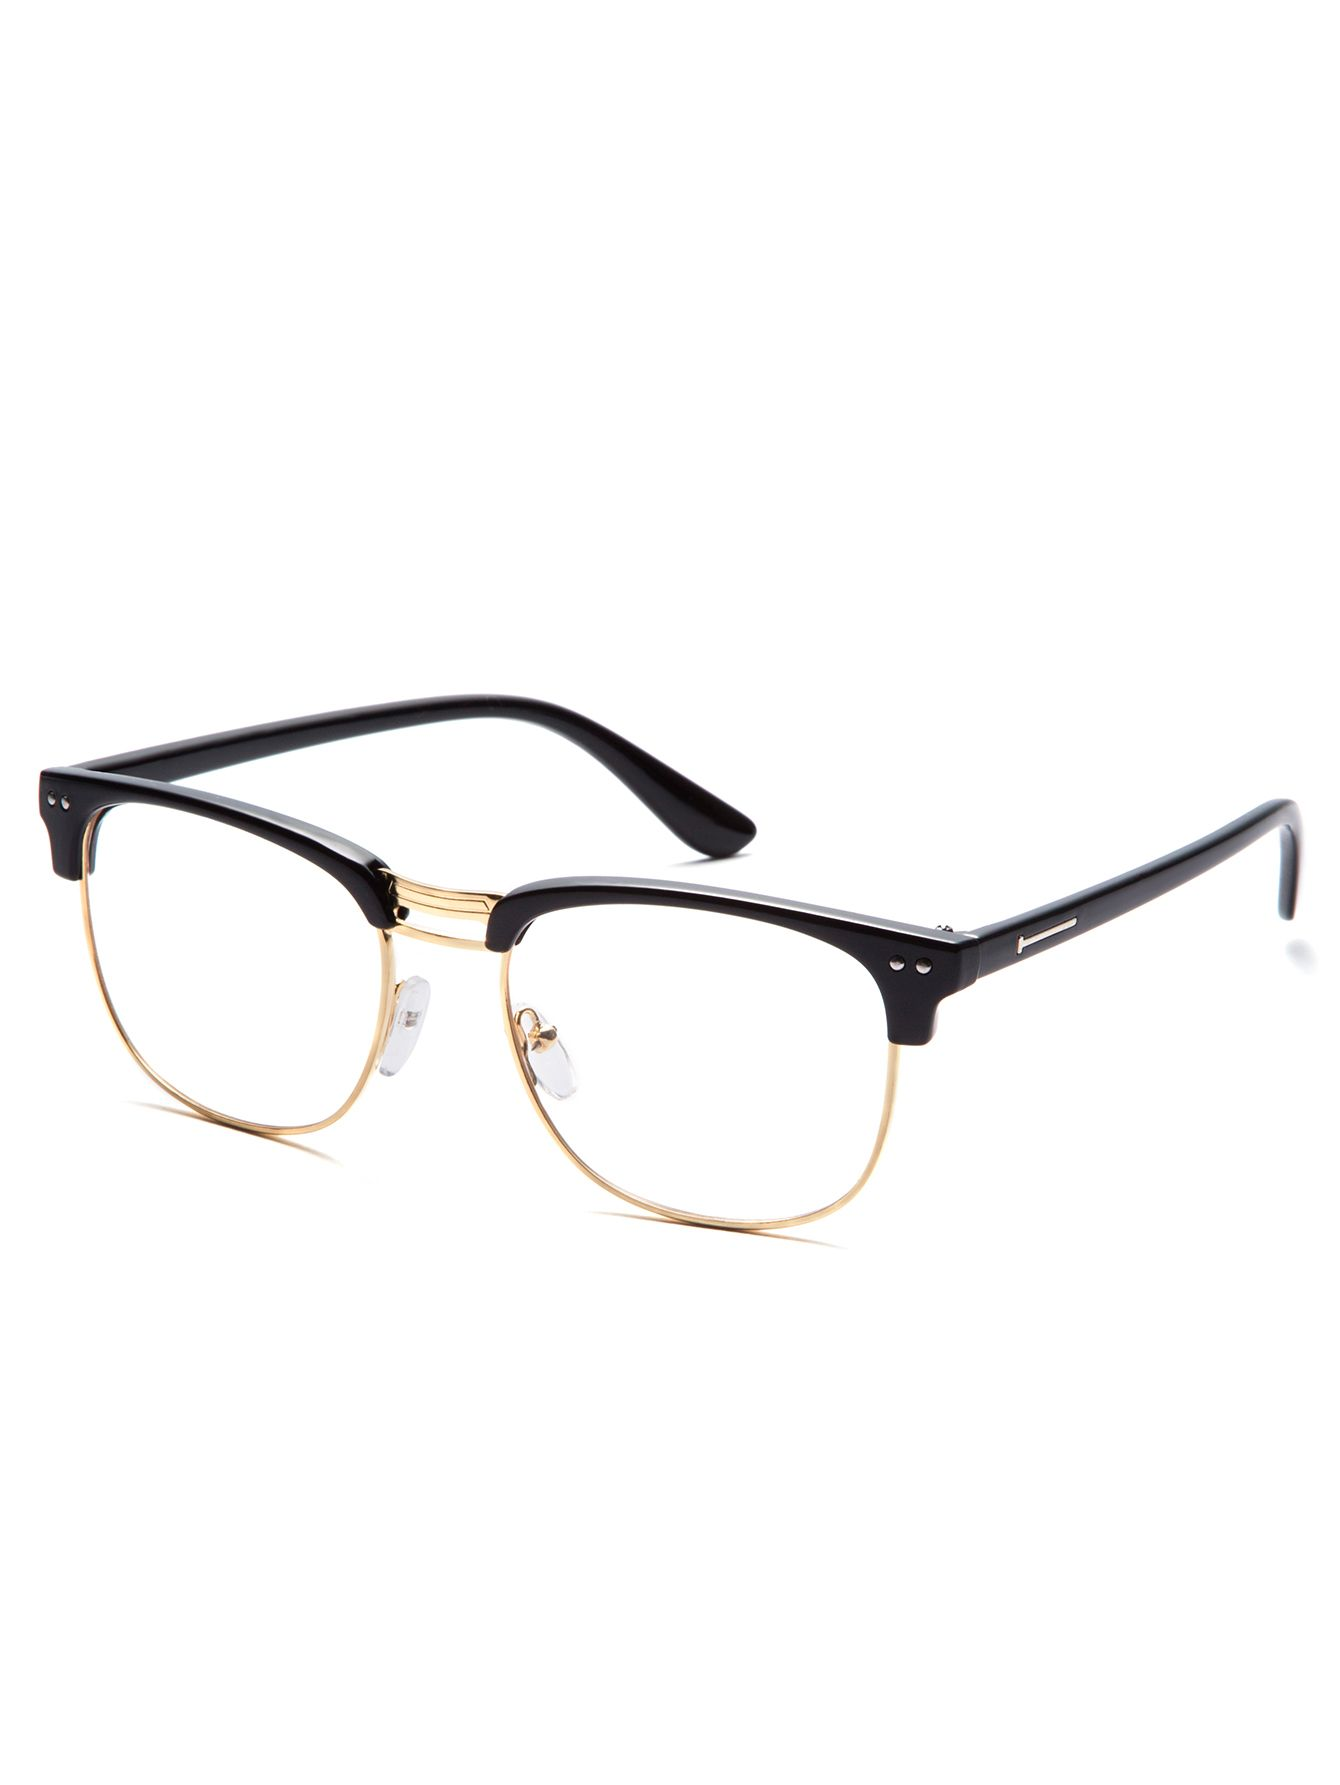 ab21139dae Online shopping for Black Open Frame Gold Trim Glasses from a great  selection of women s fashion clothing   more at MakeMeChic.COM.